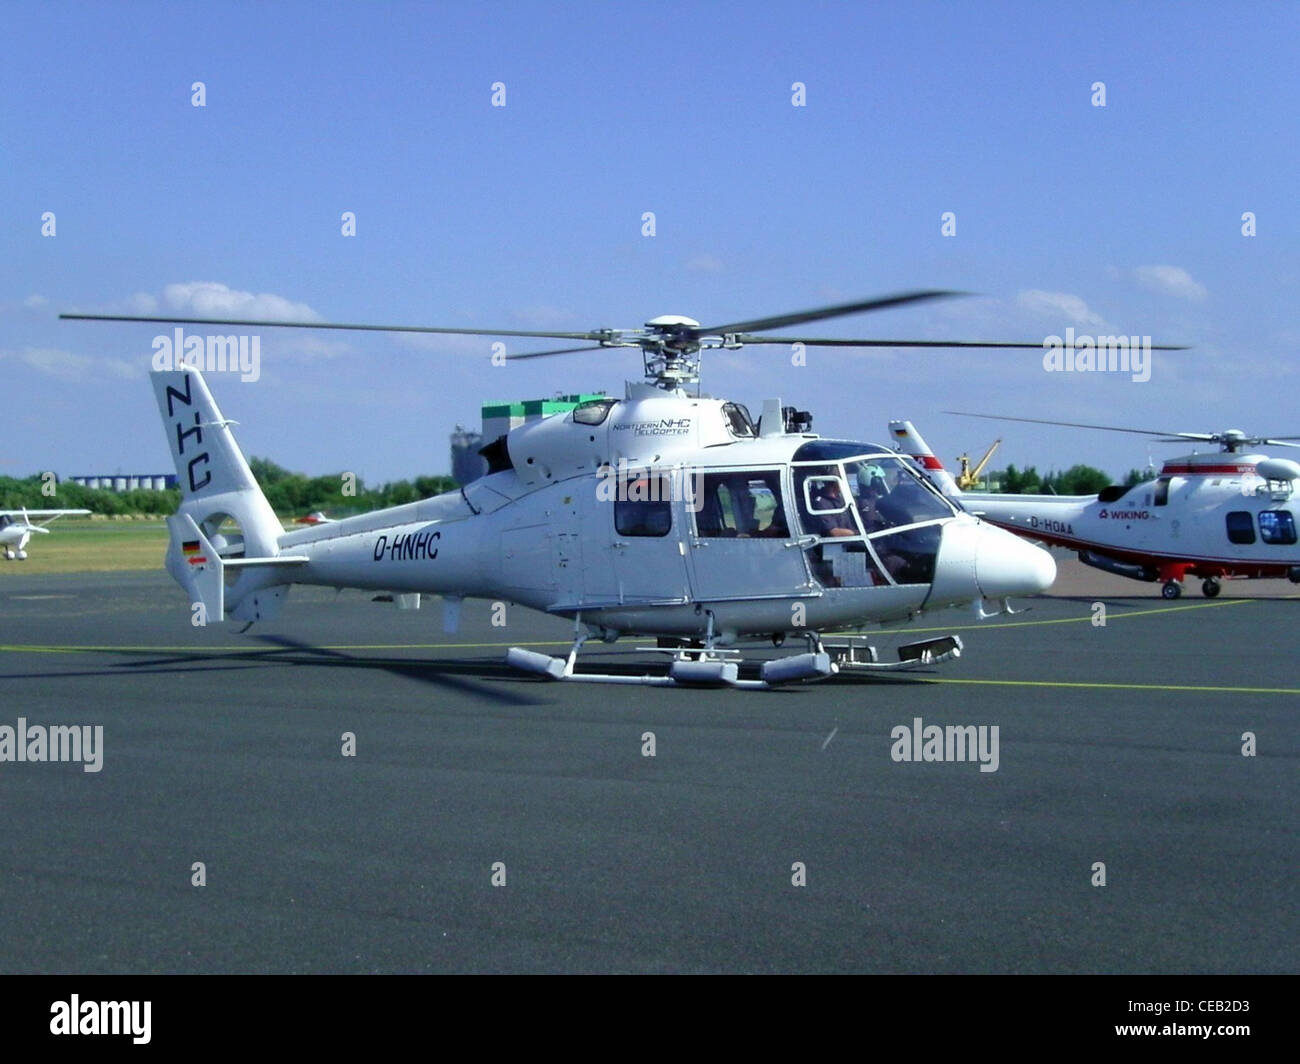 Eurocopter Dauphin SA 365 C3 helicopter with registration D-HNHC at the airfield of Bremerhaven - Stock Image